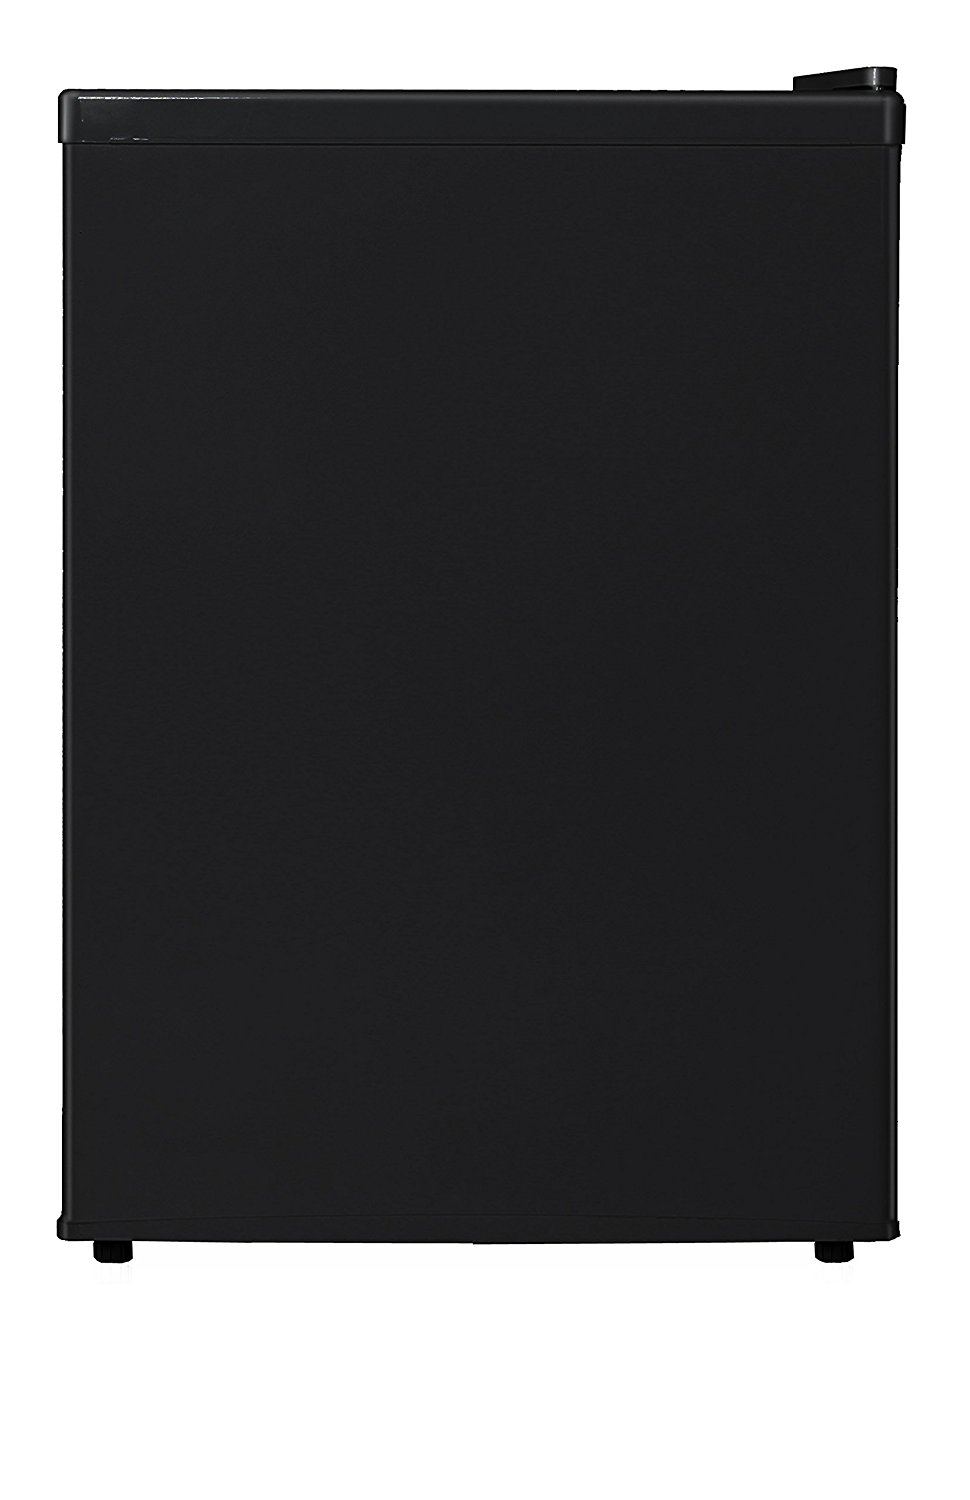 Midea WHS-87LB1 Compact Single Reversible Door Refrigerator and Freezer, 2.4 Cubic Feet, Black